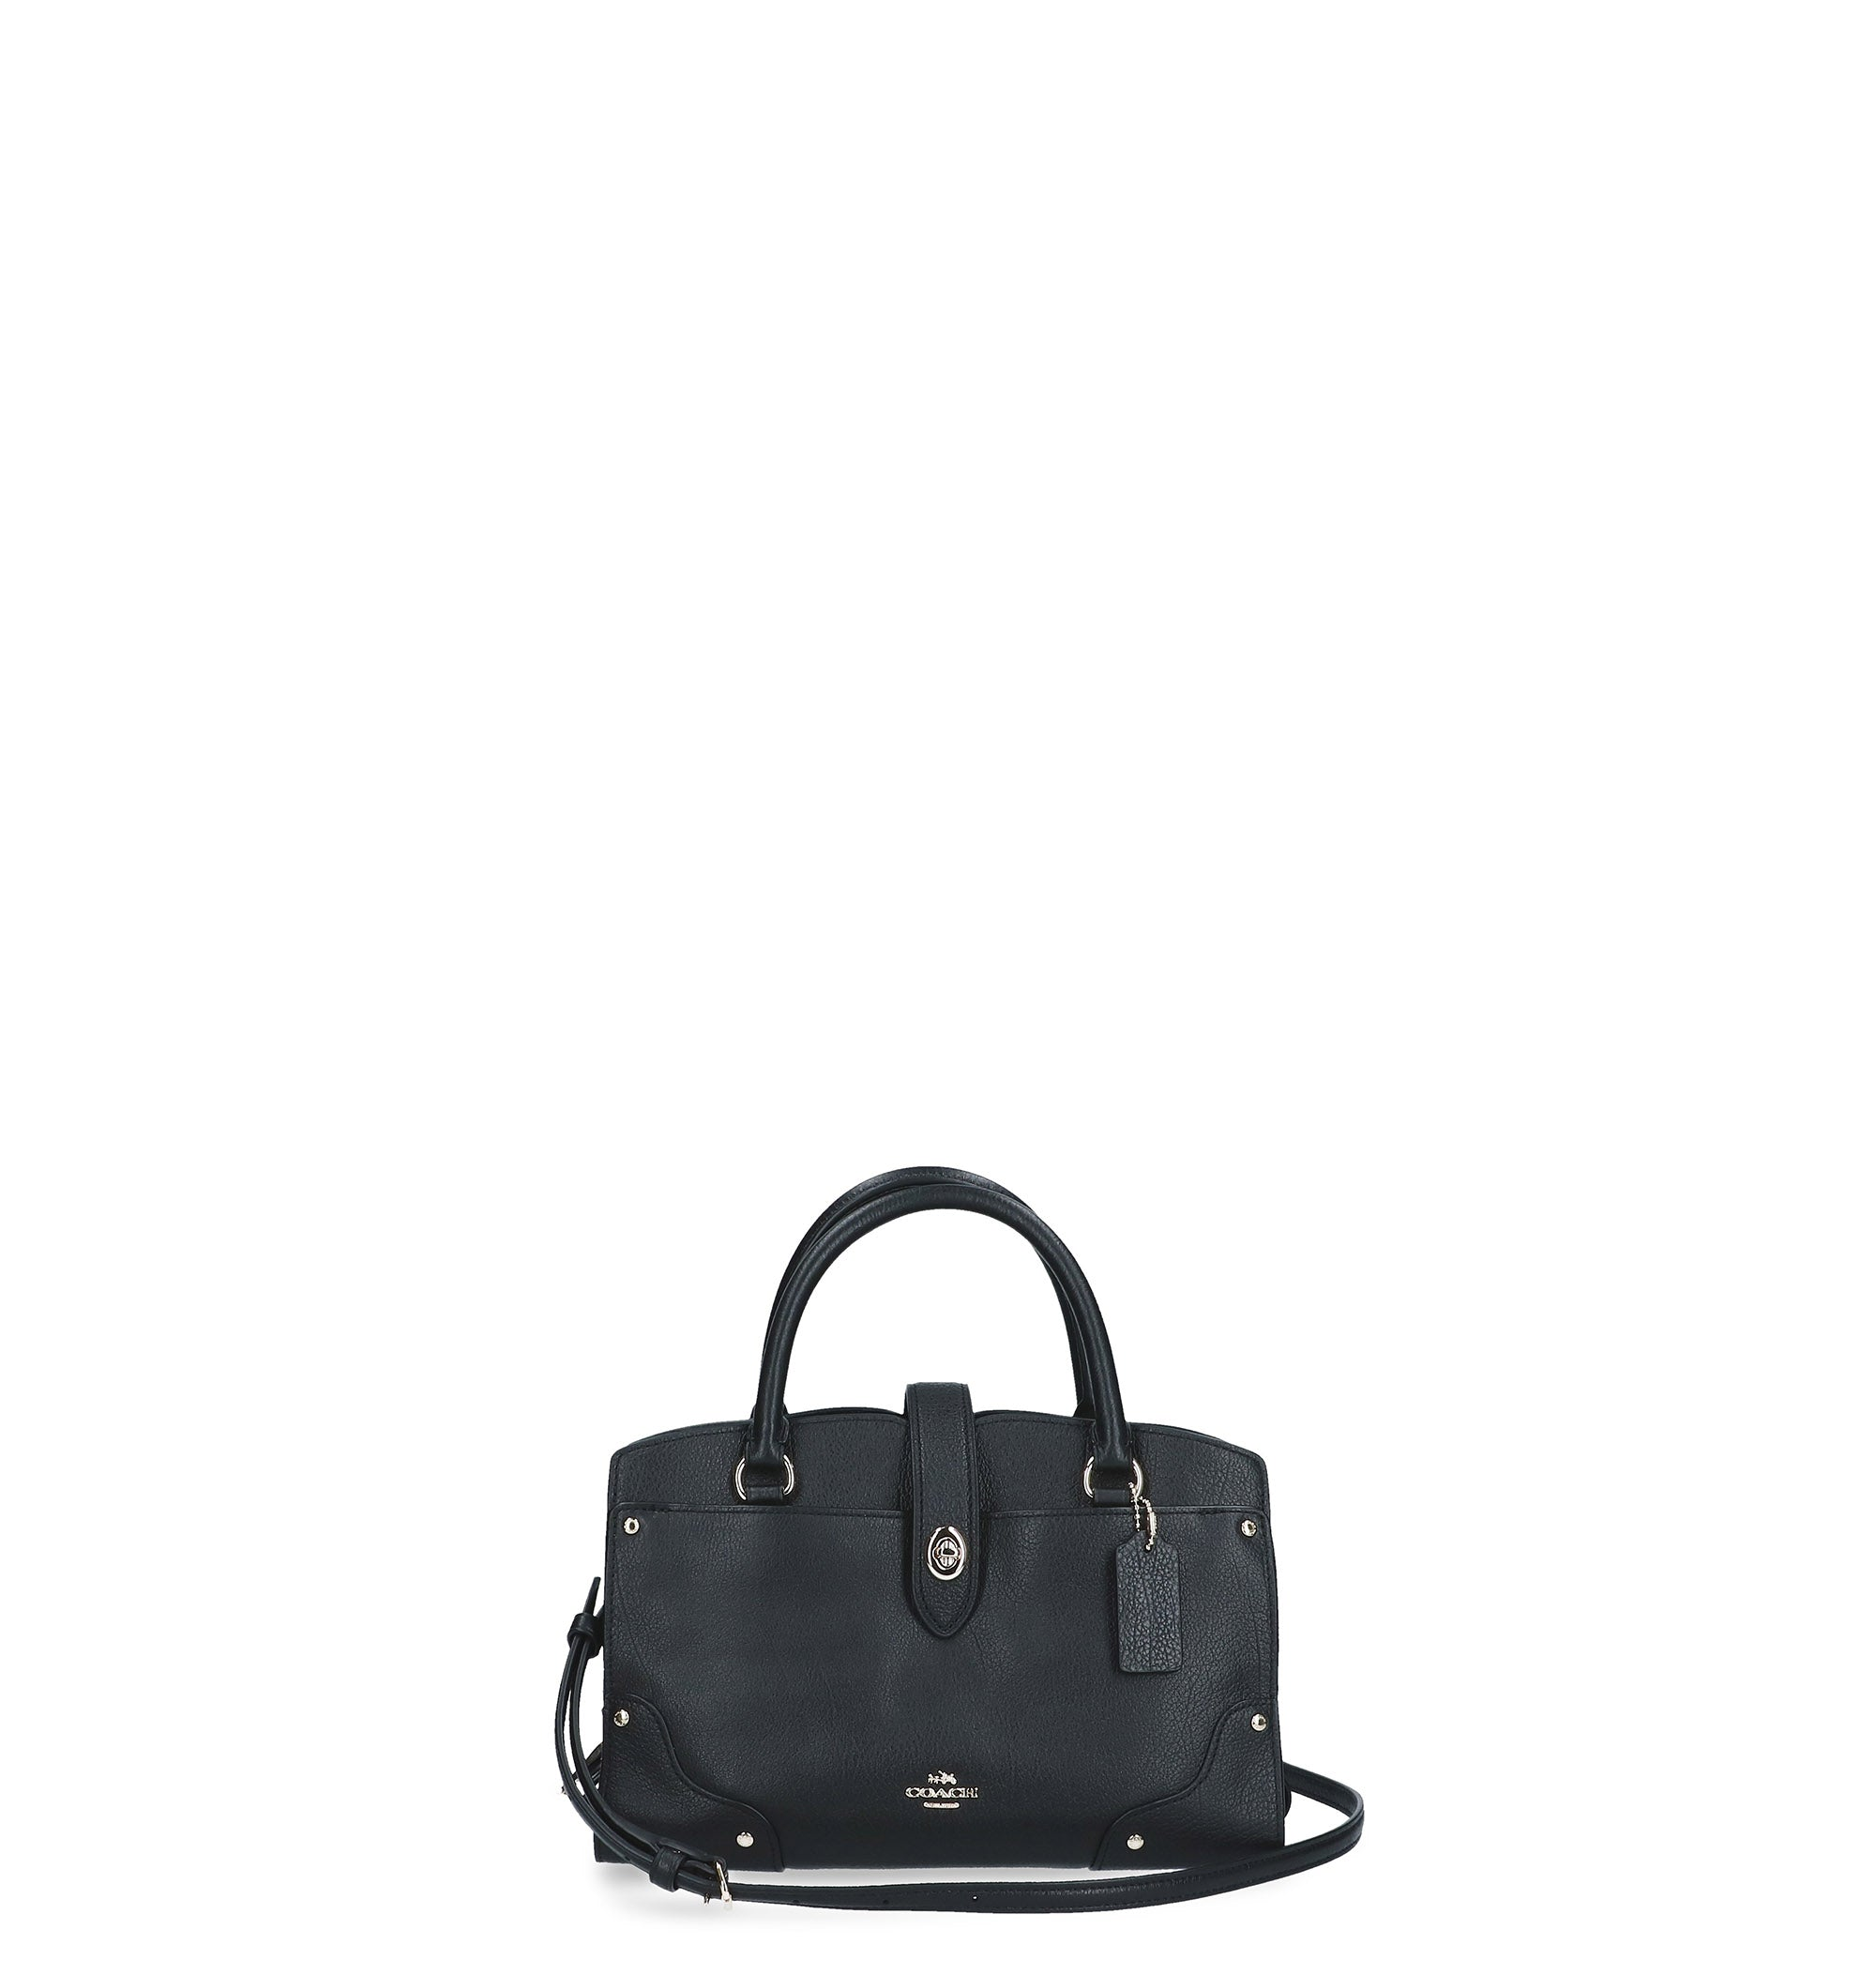 COACH MERCER TOTE BAG